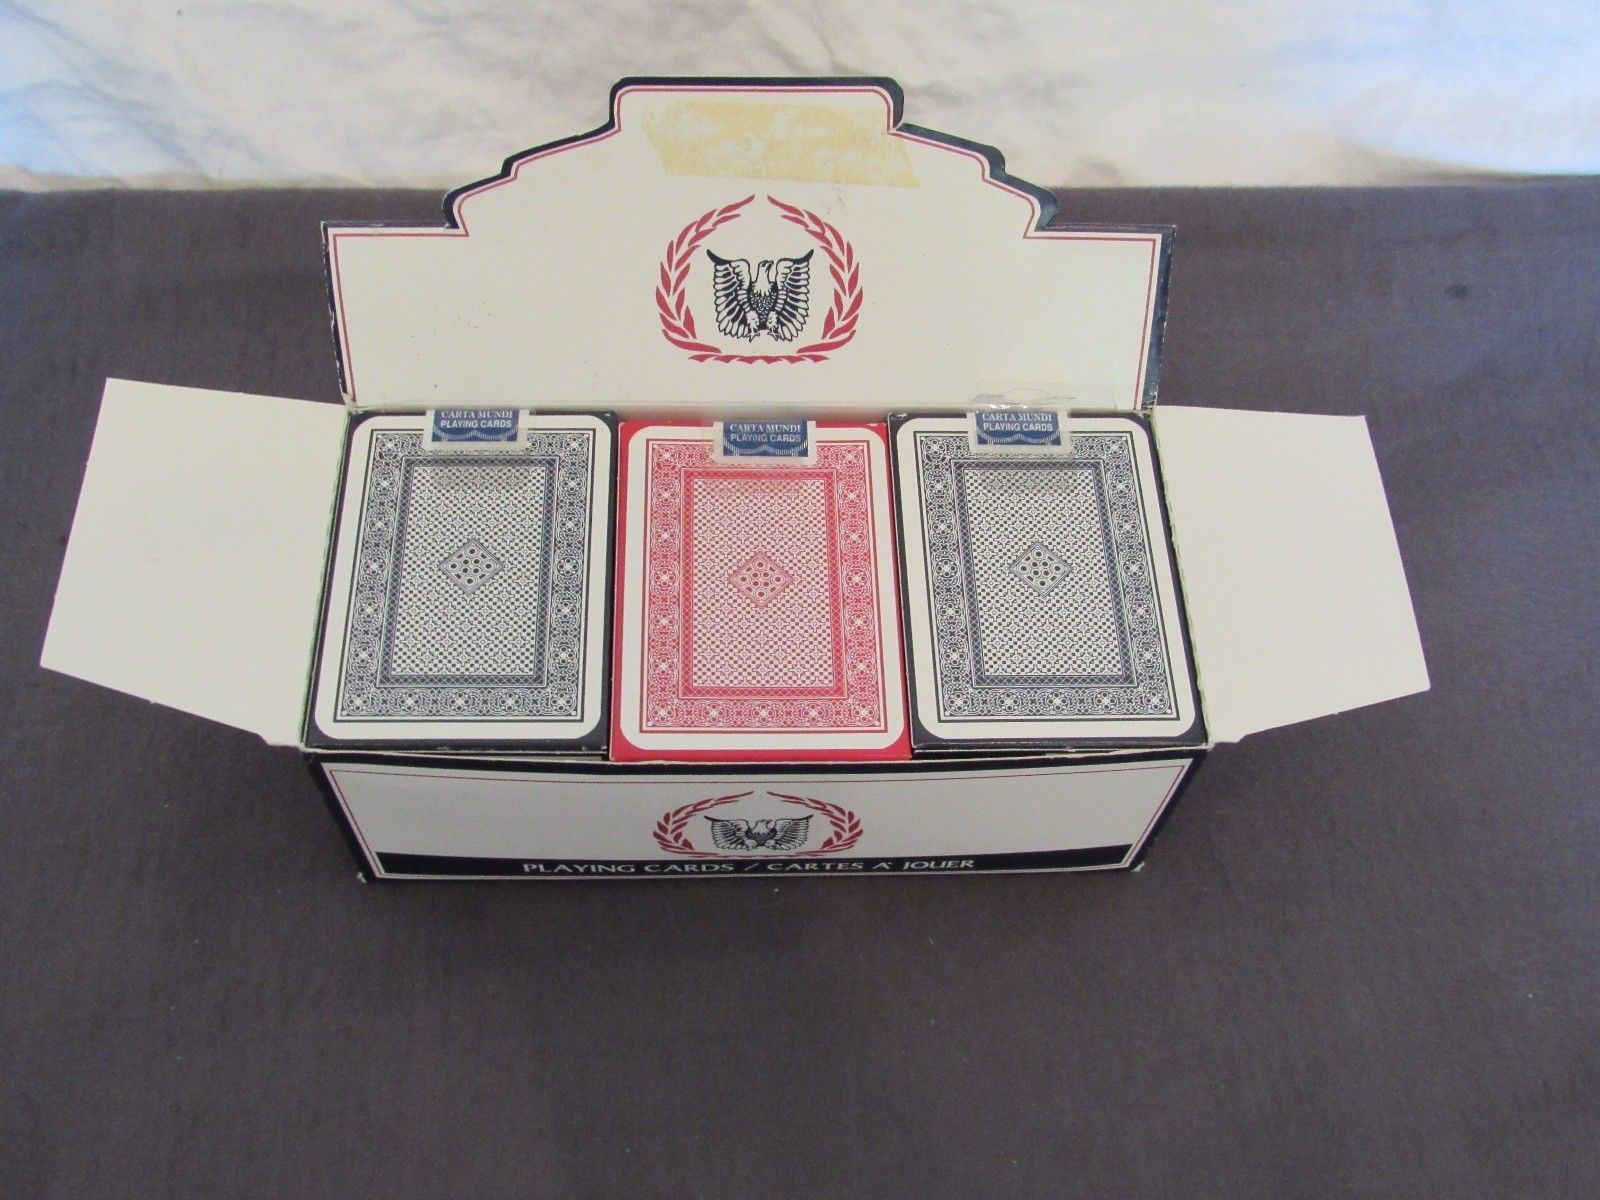 Lot Carta Mundi Eagle Brand Playing Cards Case of 12 Decks Blue & Red NEW